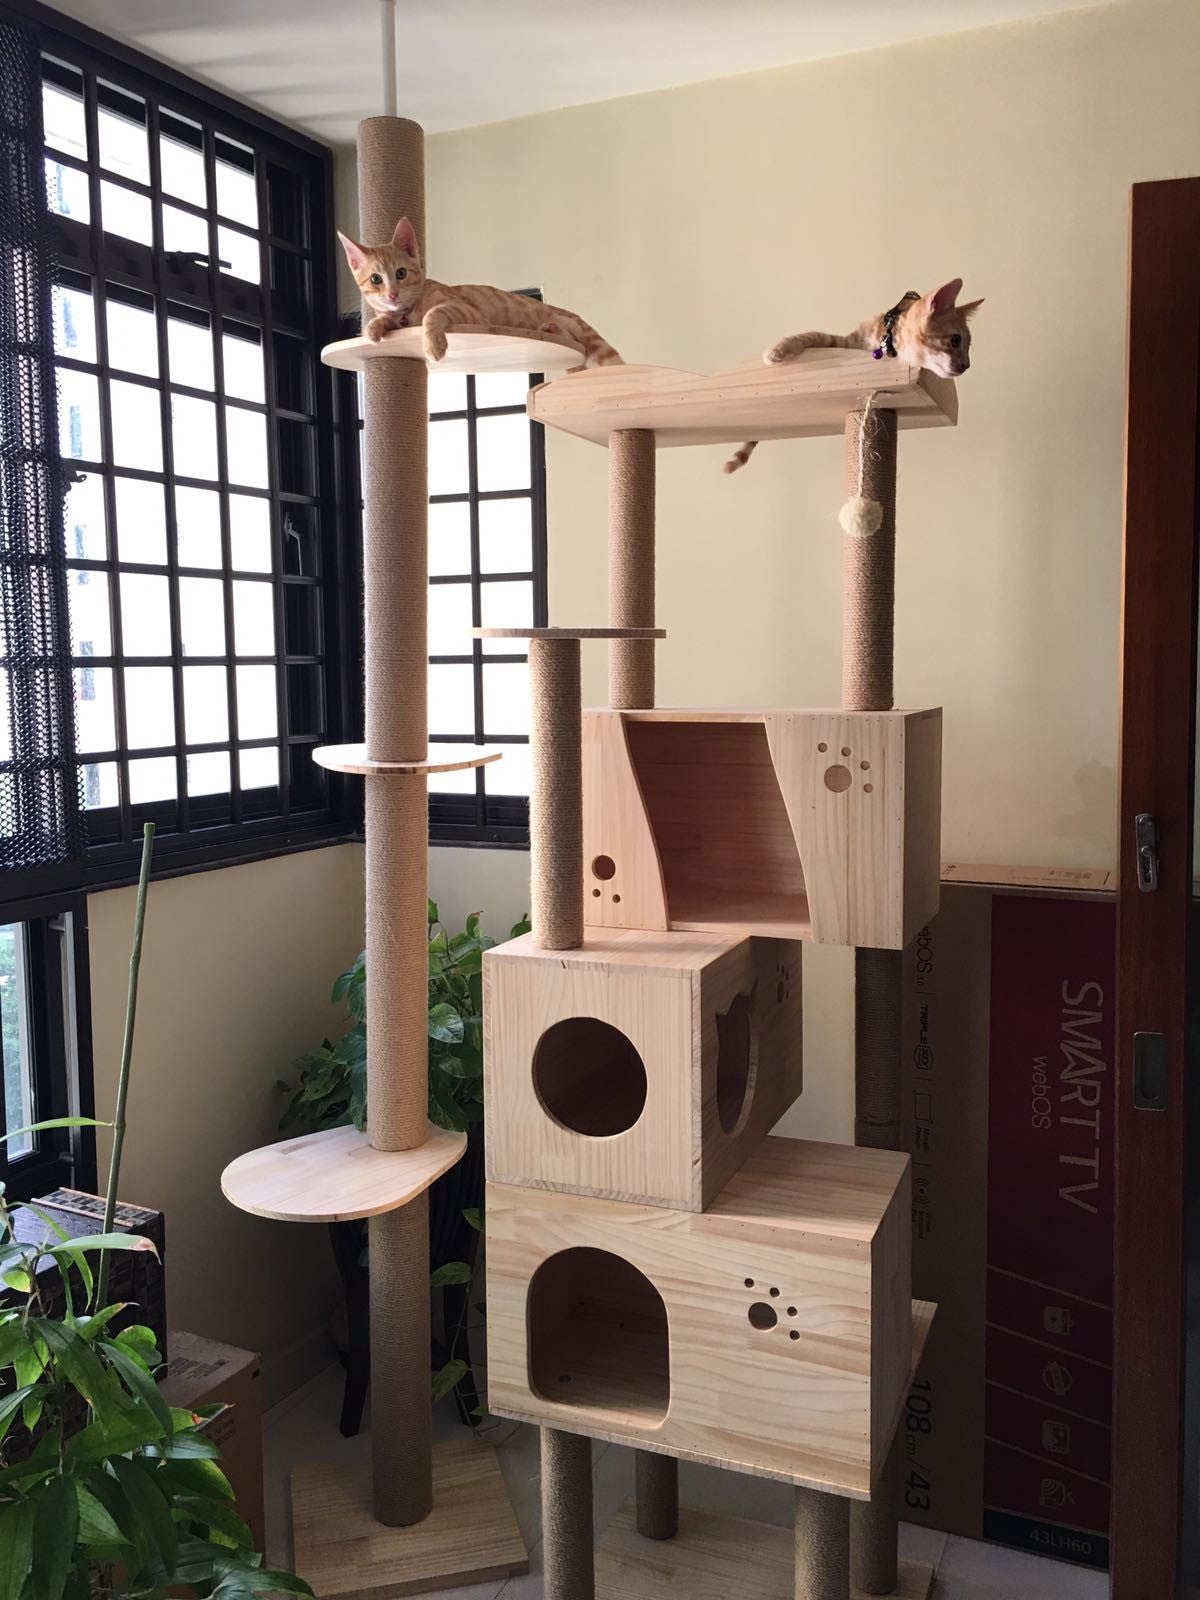 Perfect PVC Pole Deluxe 1.8m Wooden Cat Furniture w/ Triple Houses  JF34